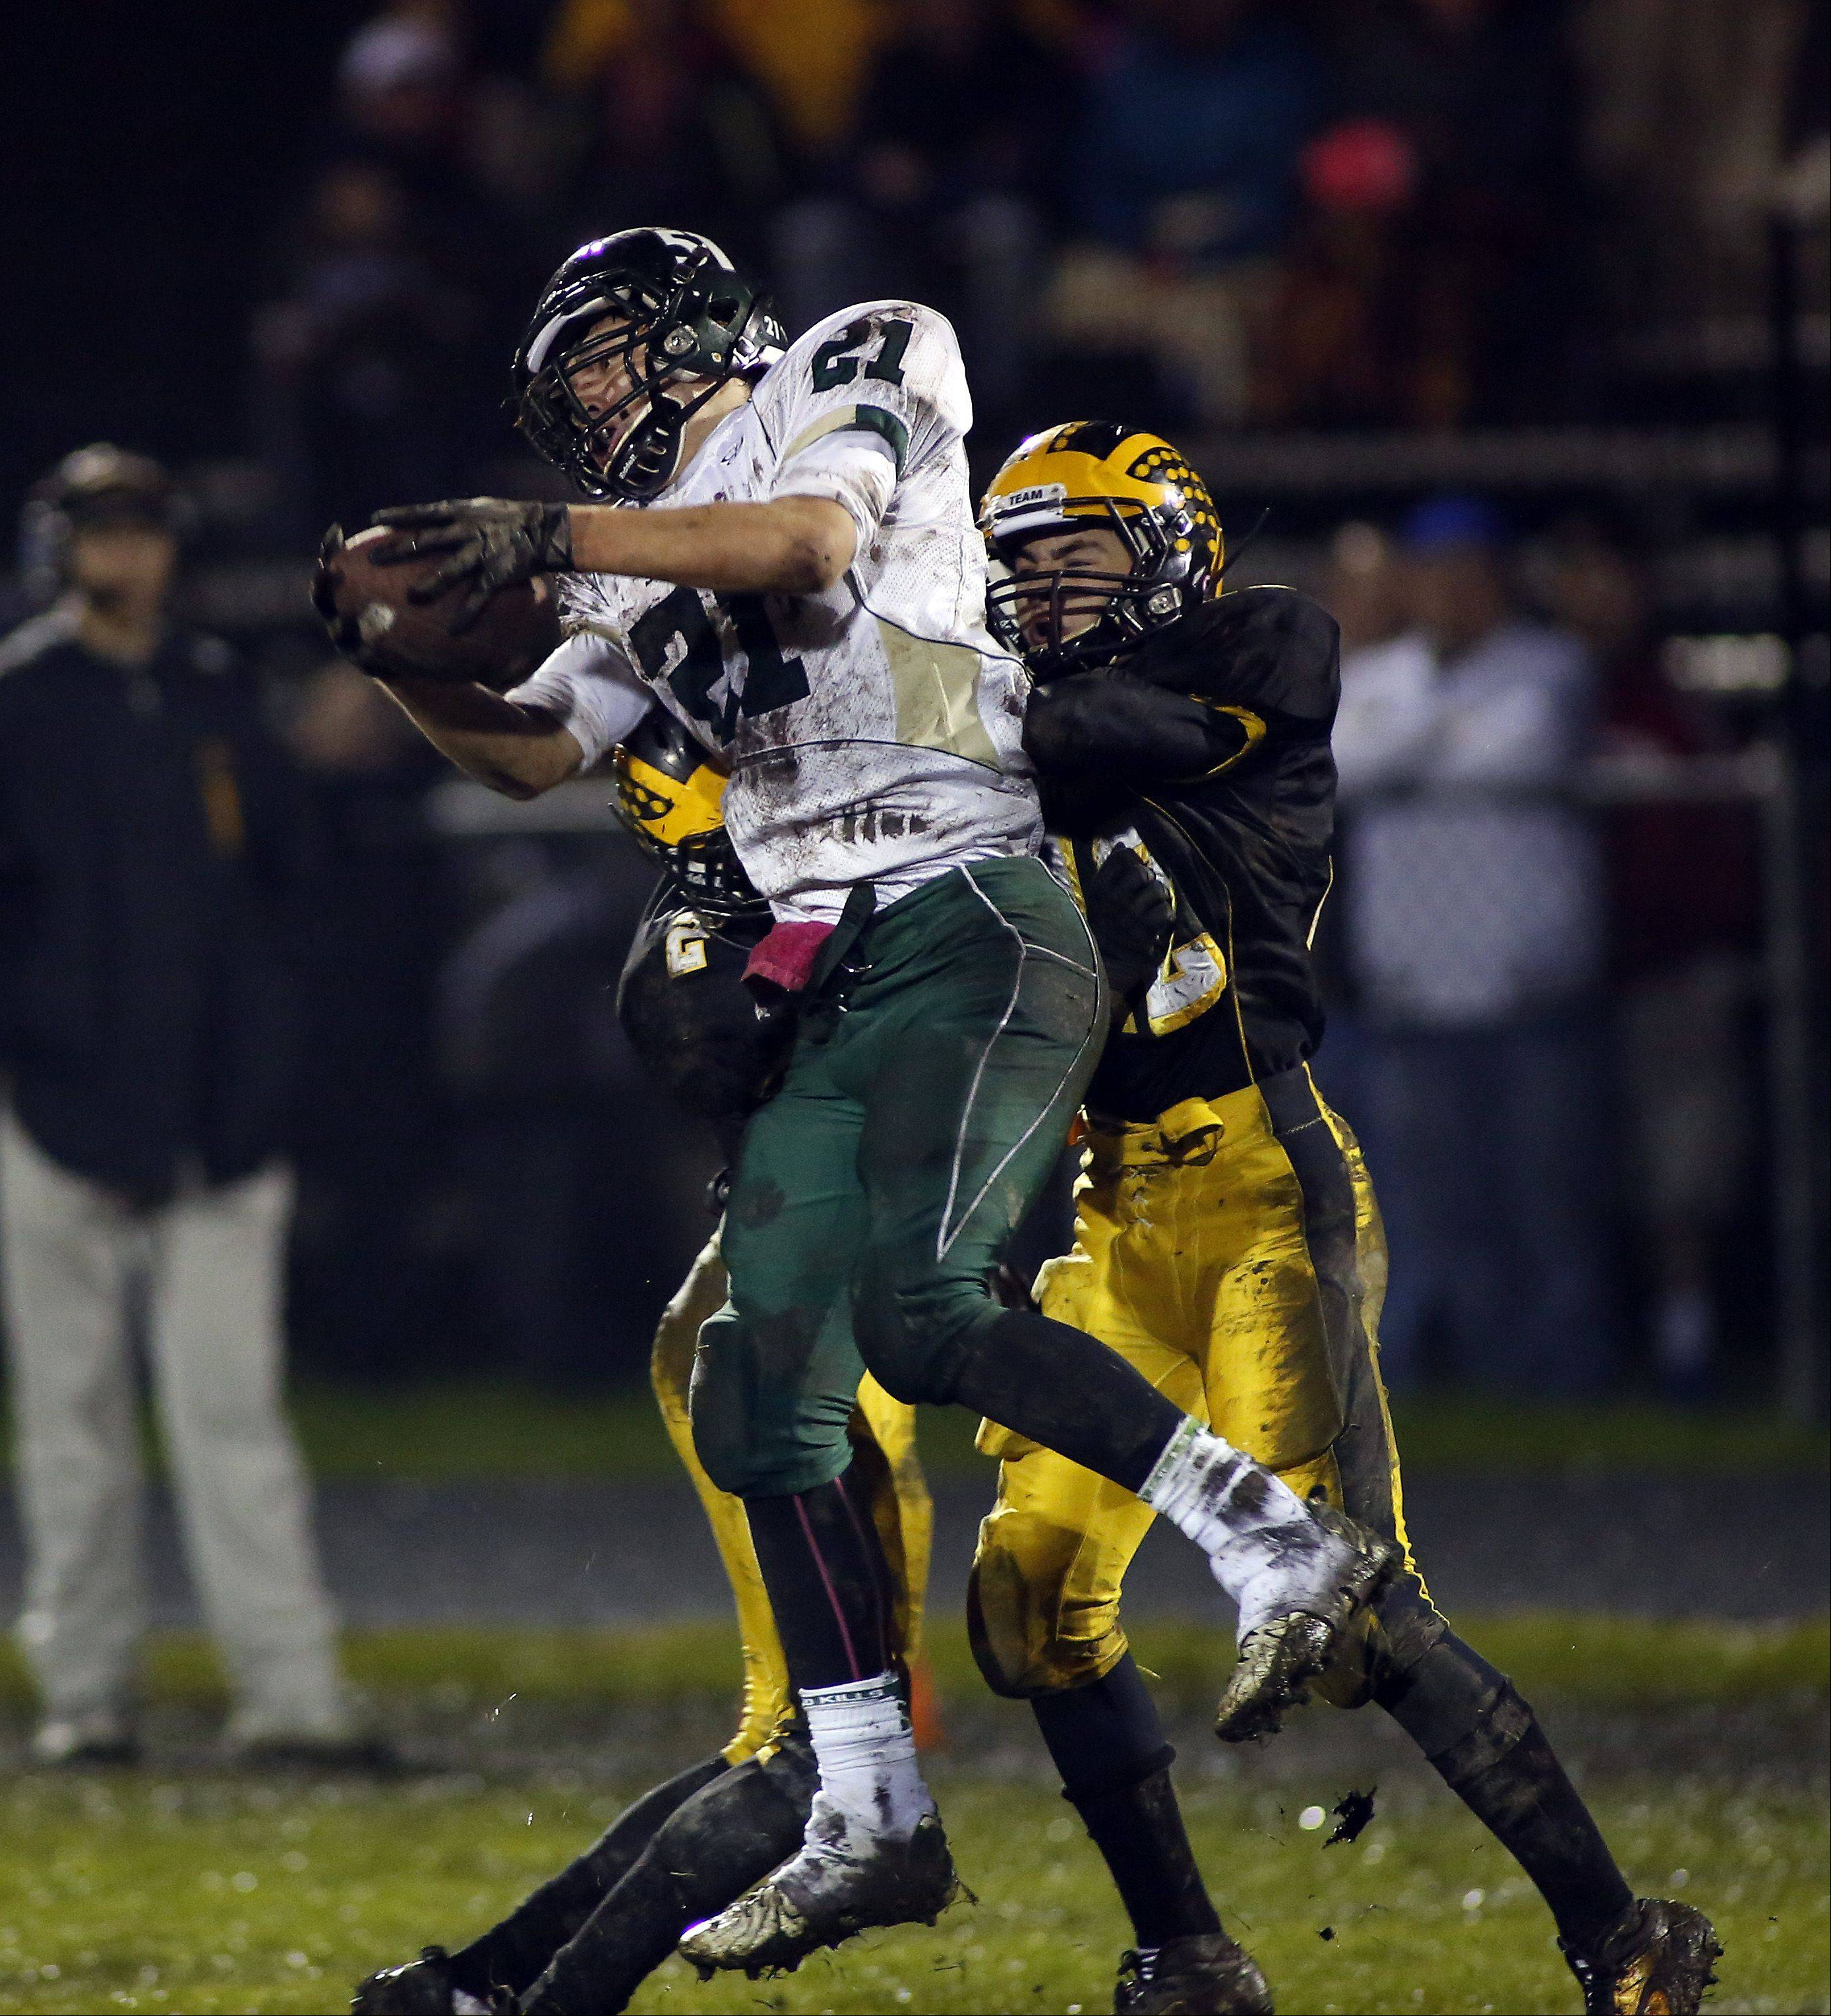 St. Edward's Danny Favela (21) reels in a long touchdown pass at Harvard during the IHSA Class 4A playoff game Friday.